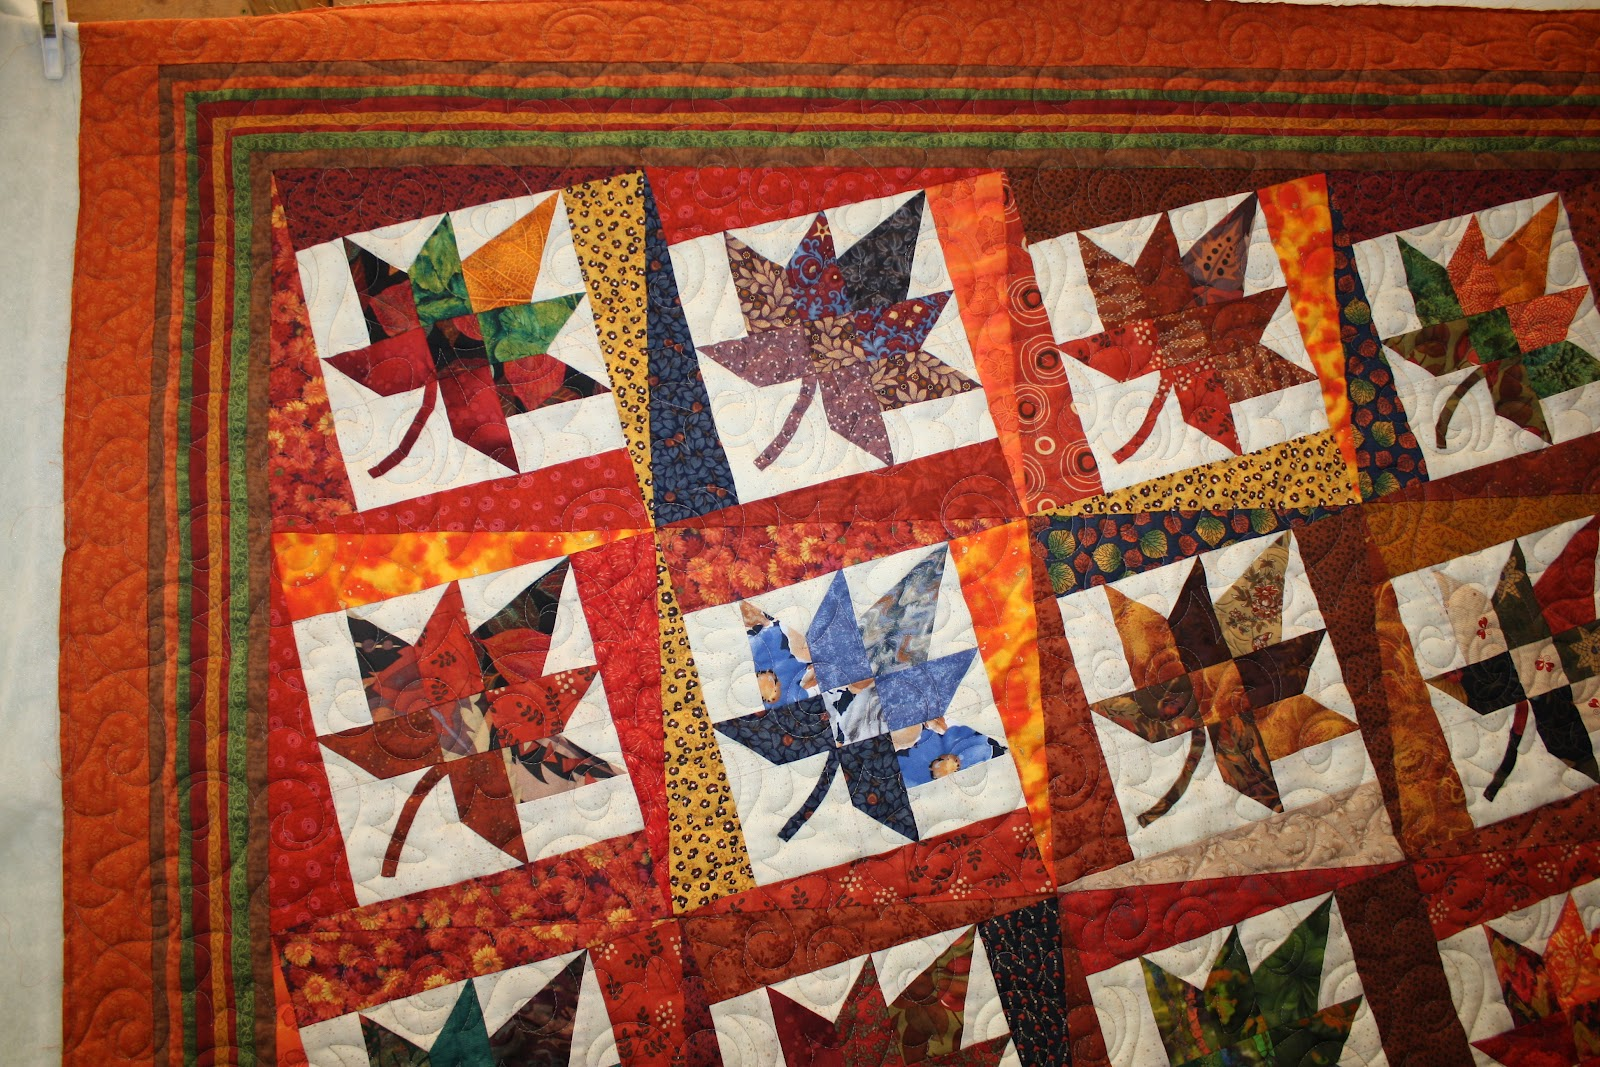 Quilt Template Leaves : Jane Monk Studio - Longarm Machine Quilting & Teaching the Art of Zentangle?: A beautiful Autumn ...